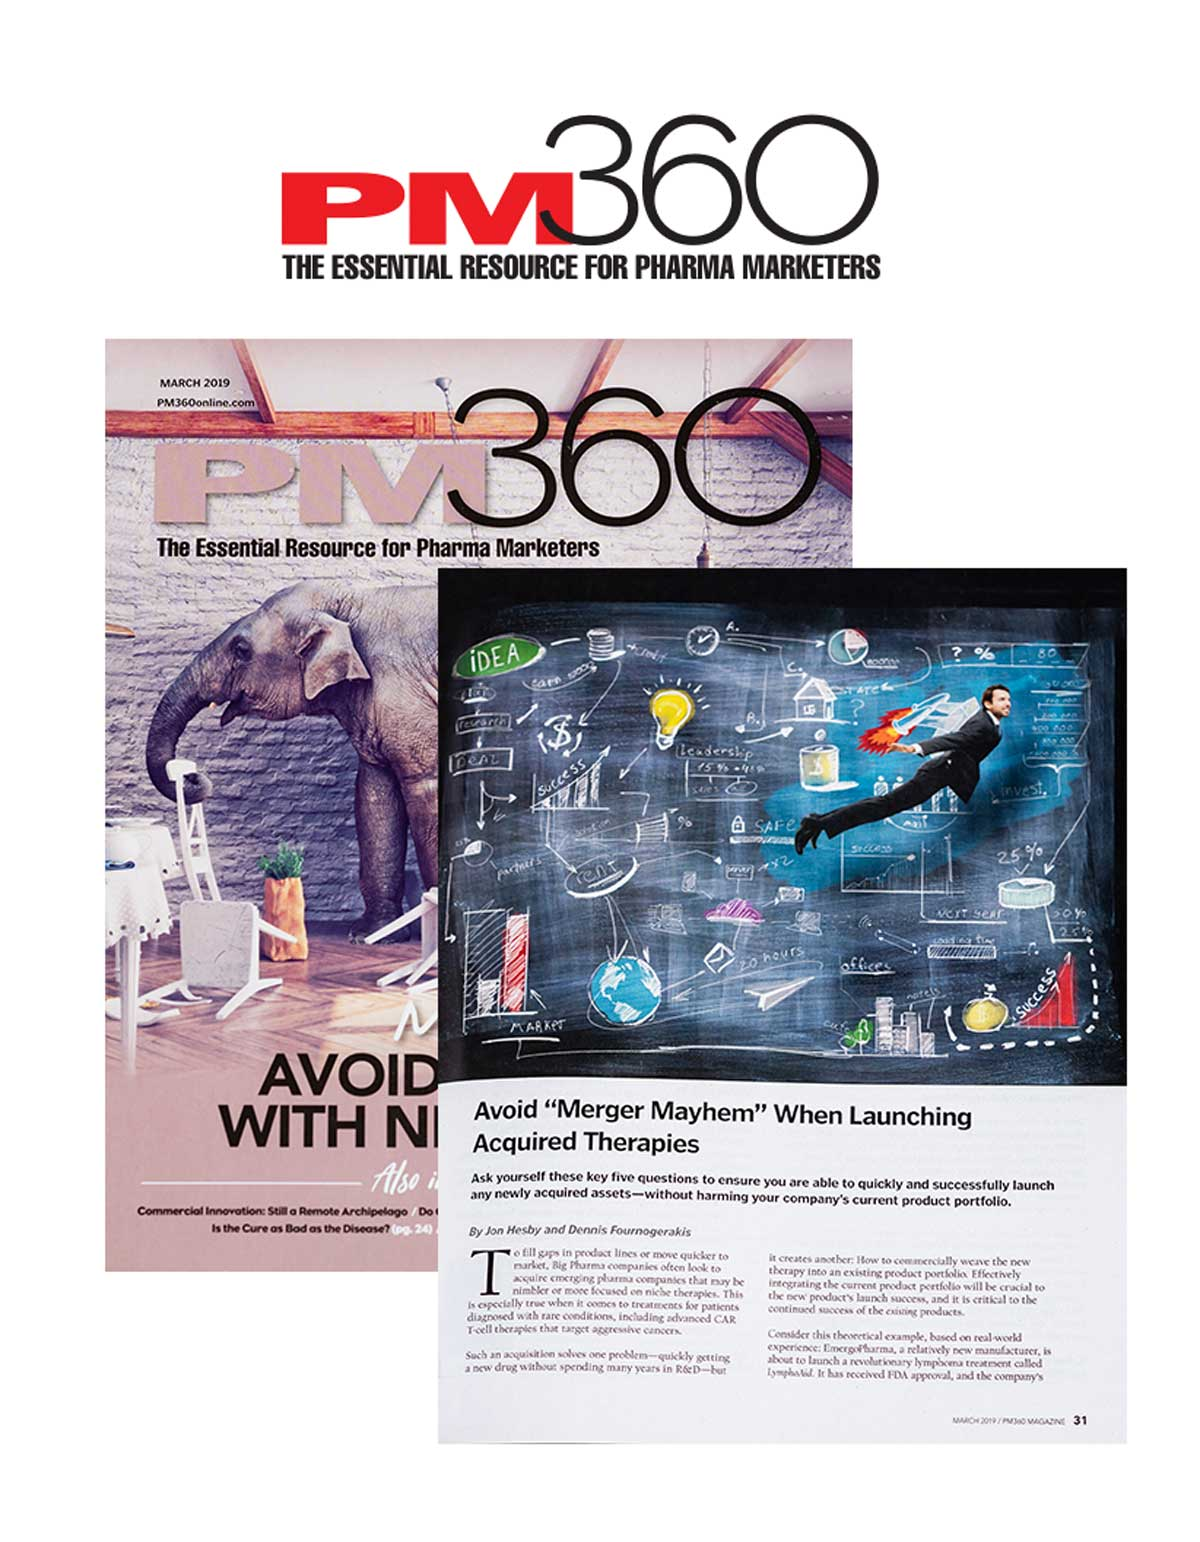 PM360 Magazine Cover Image with Featured Article from Beghou Consulting